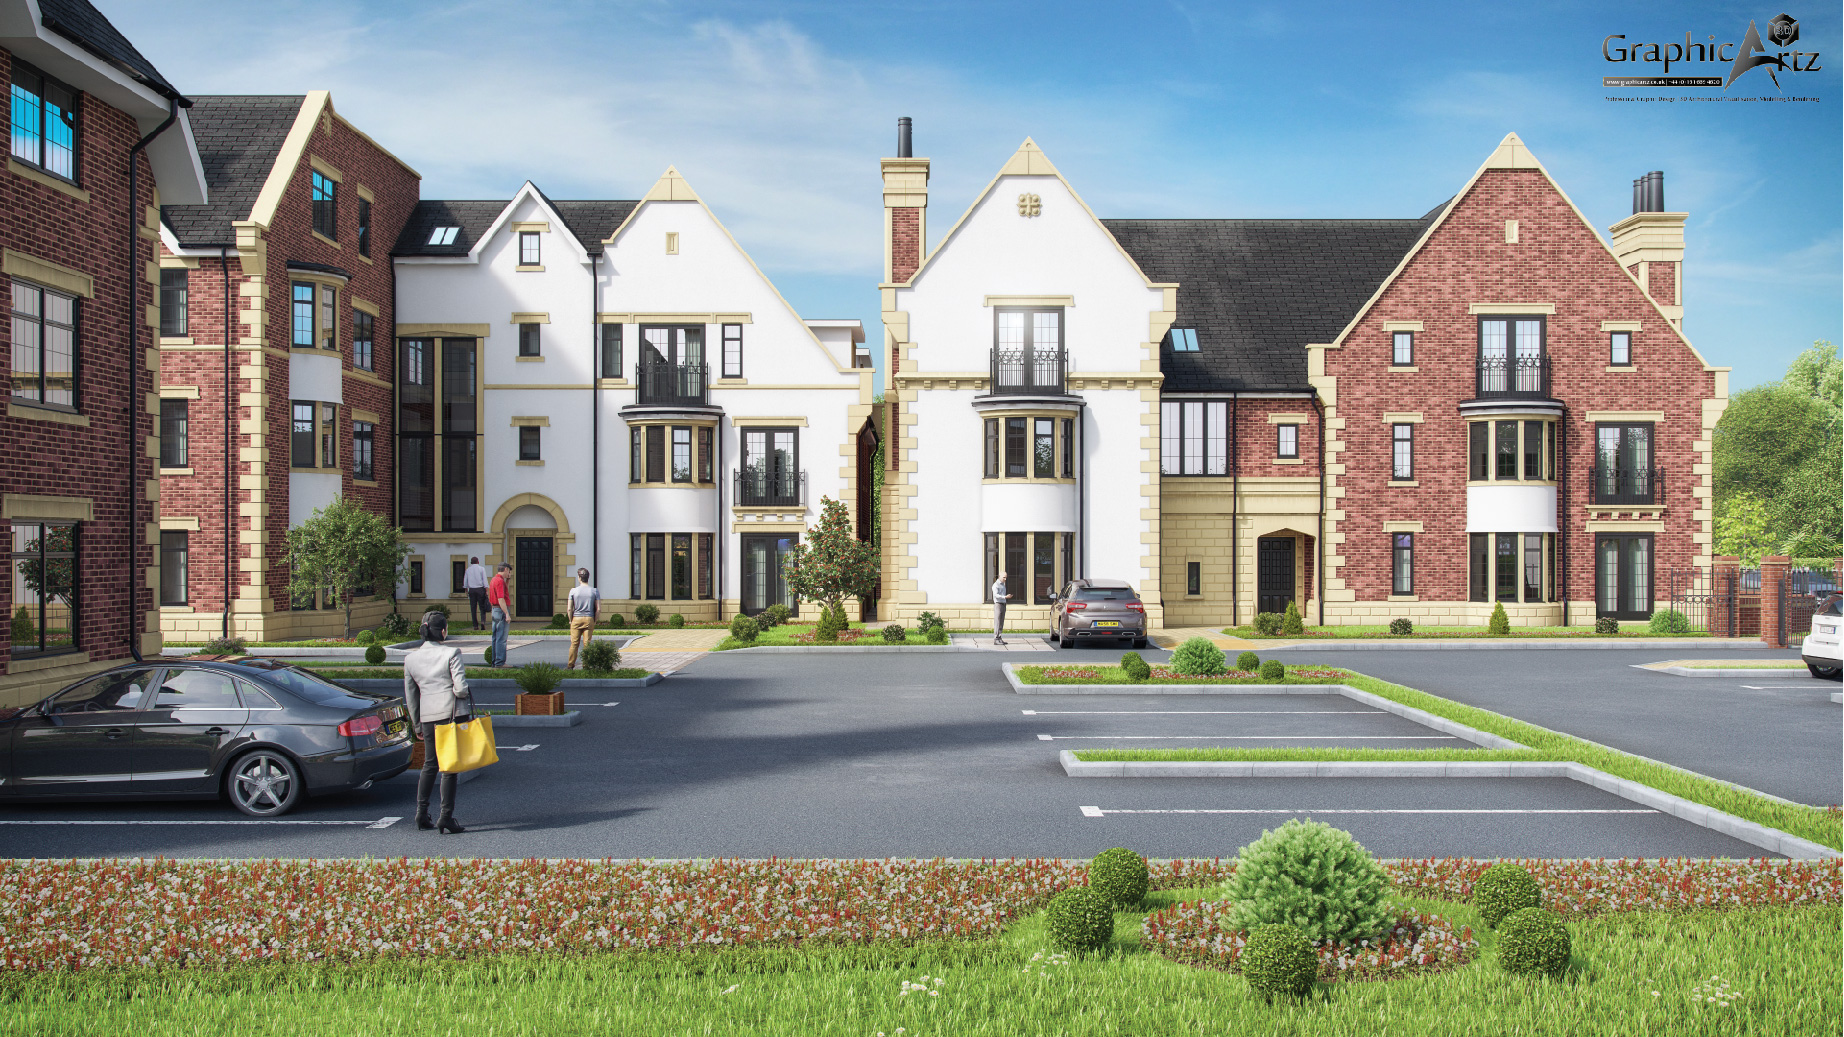 Hickory Grange CGI eye-view